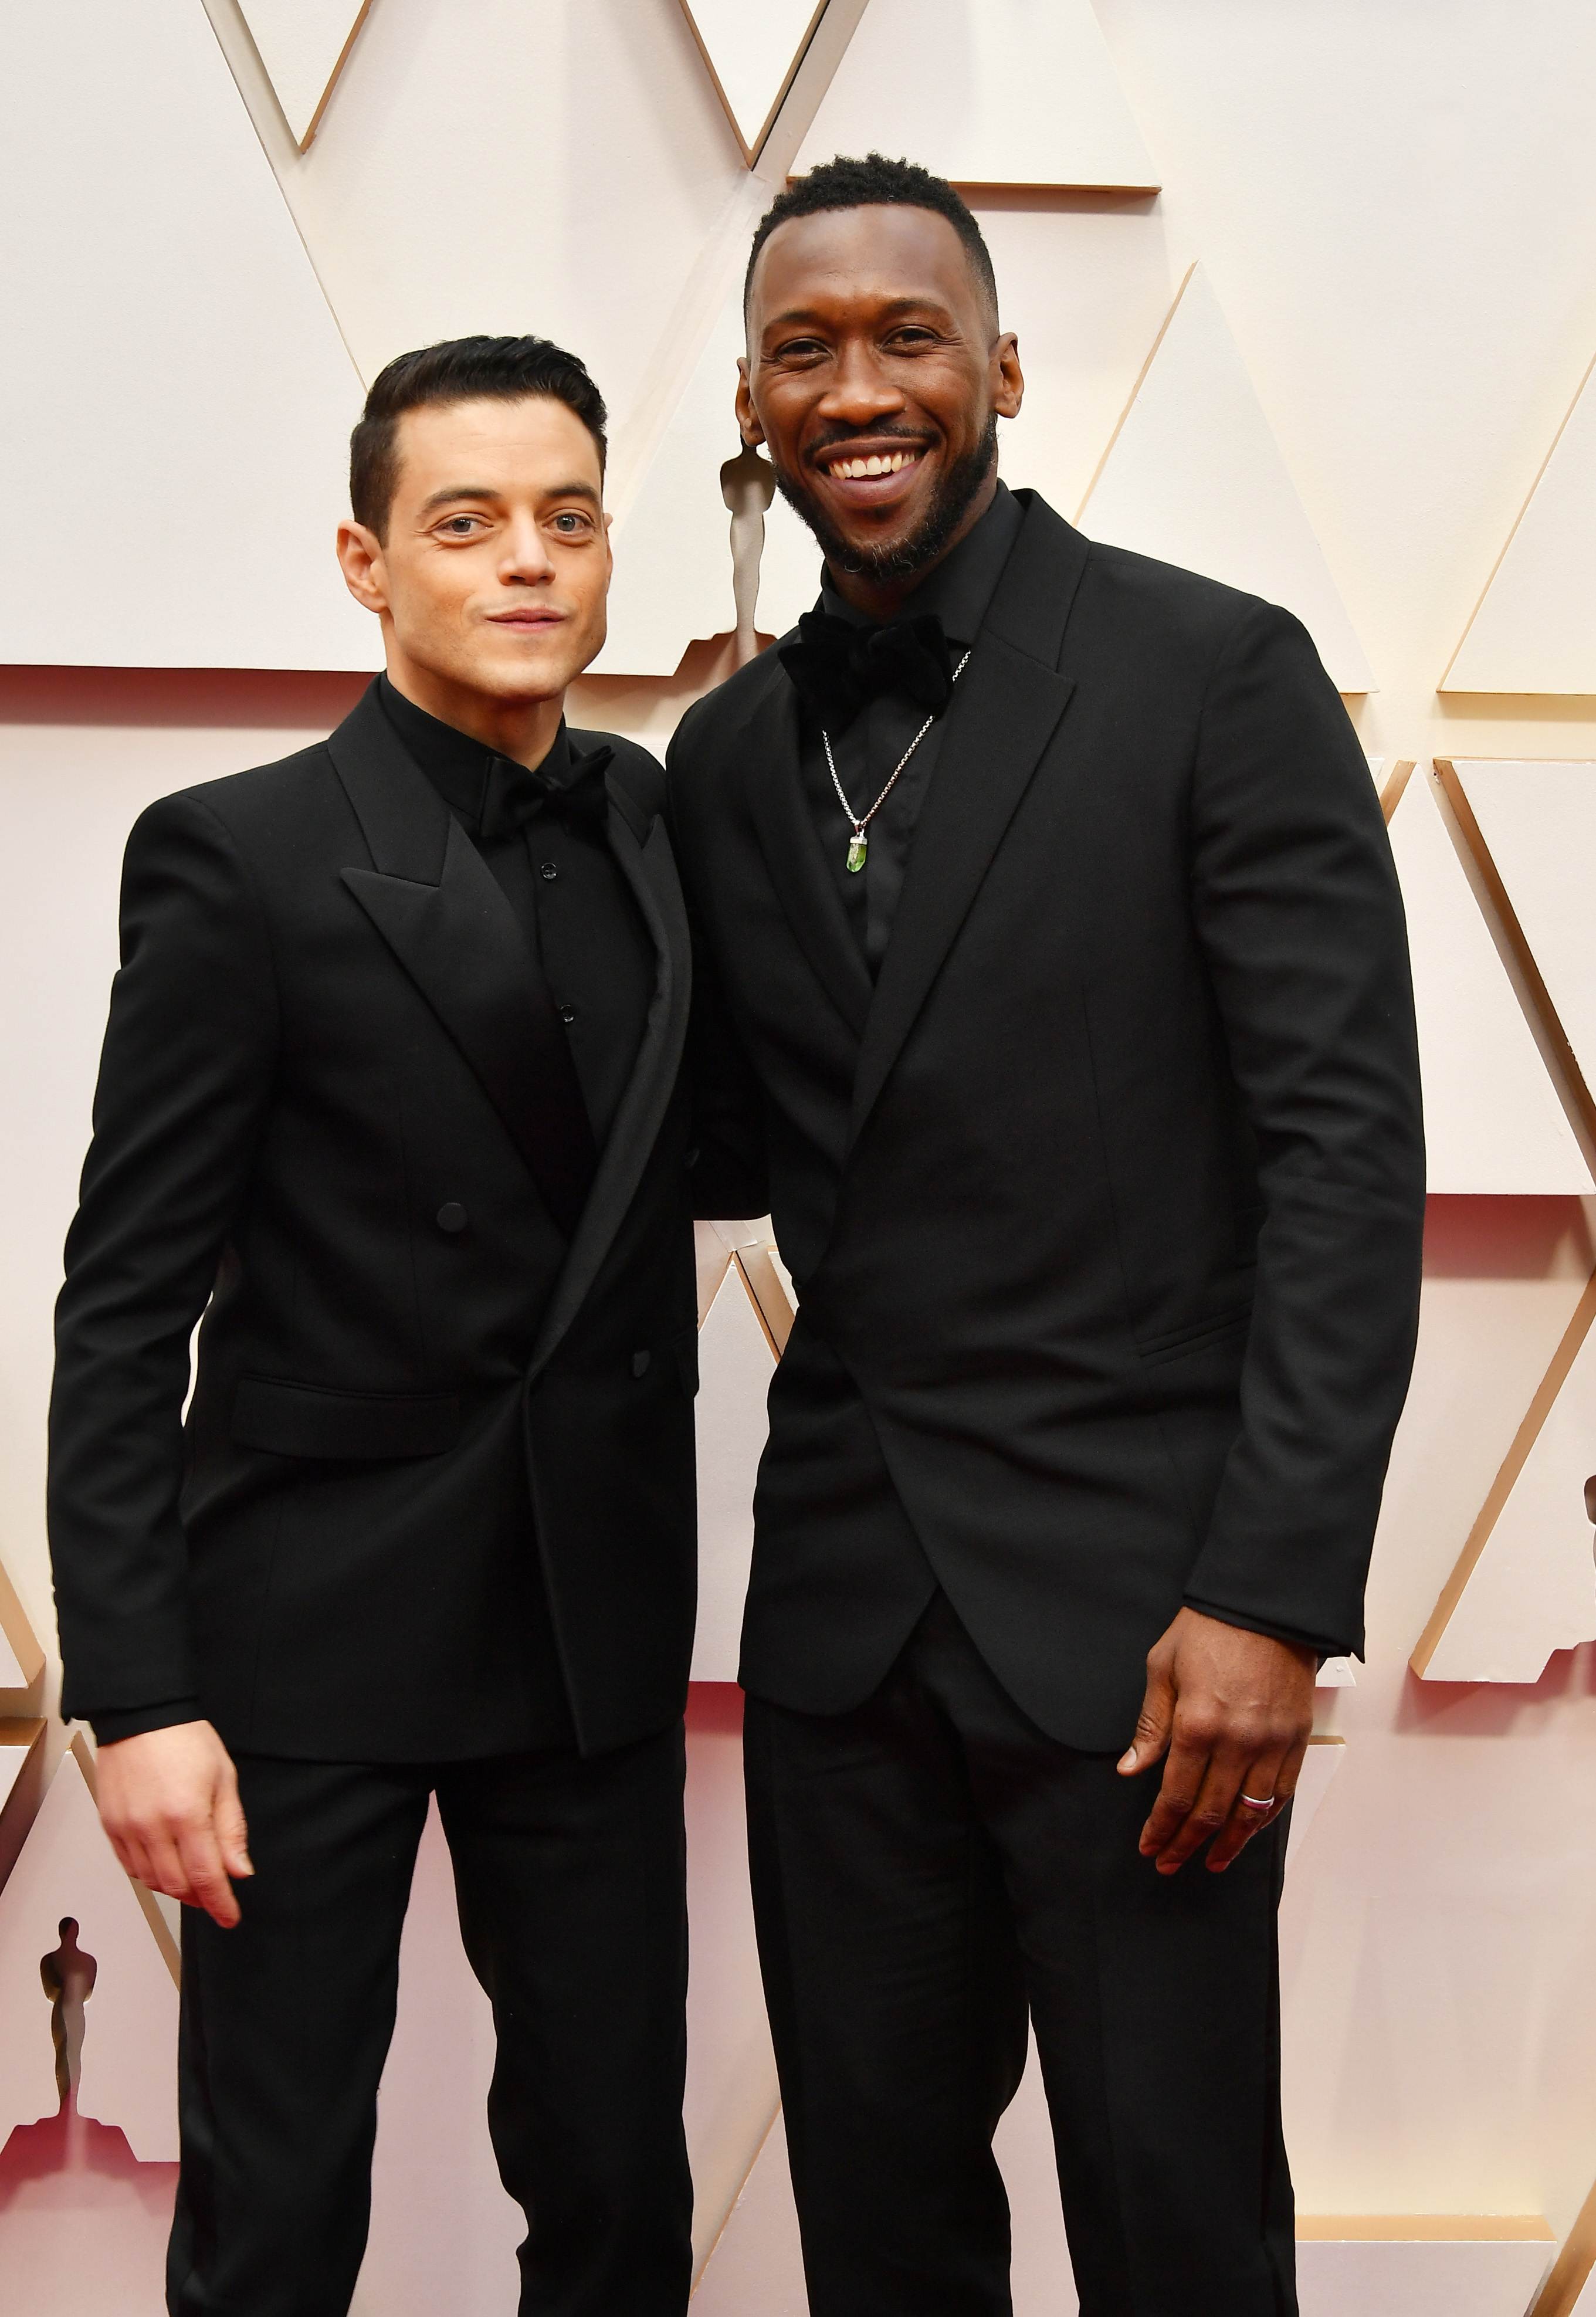 HOLLYWOOD, CALIFORNIA - FEBRUARY 09: (L-R) Mahershala Ali and Rami Malek attend the 92nd Annual Academy Awards at Hollywood and Highland on February 09, 2020 in Hollywood, California. (Photo by Amy Sussman/Getty Images)